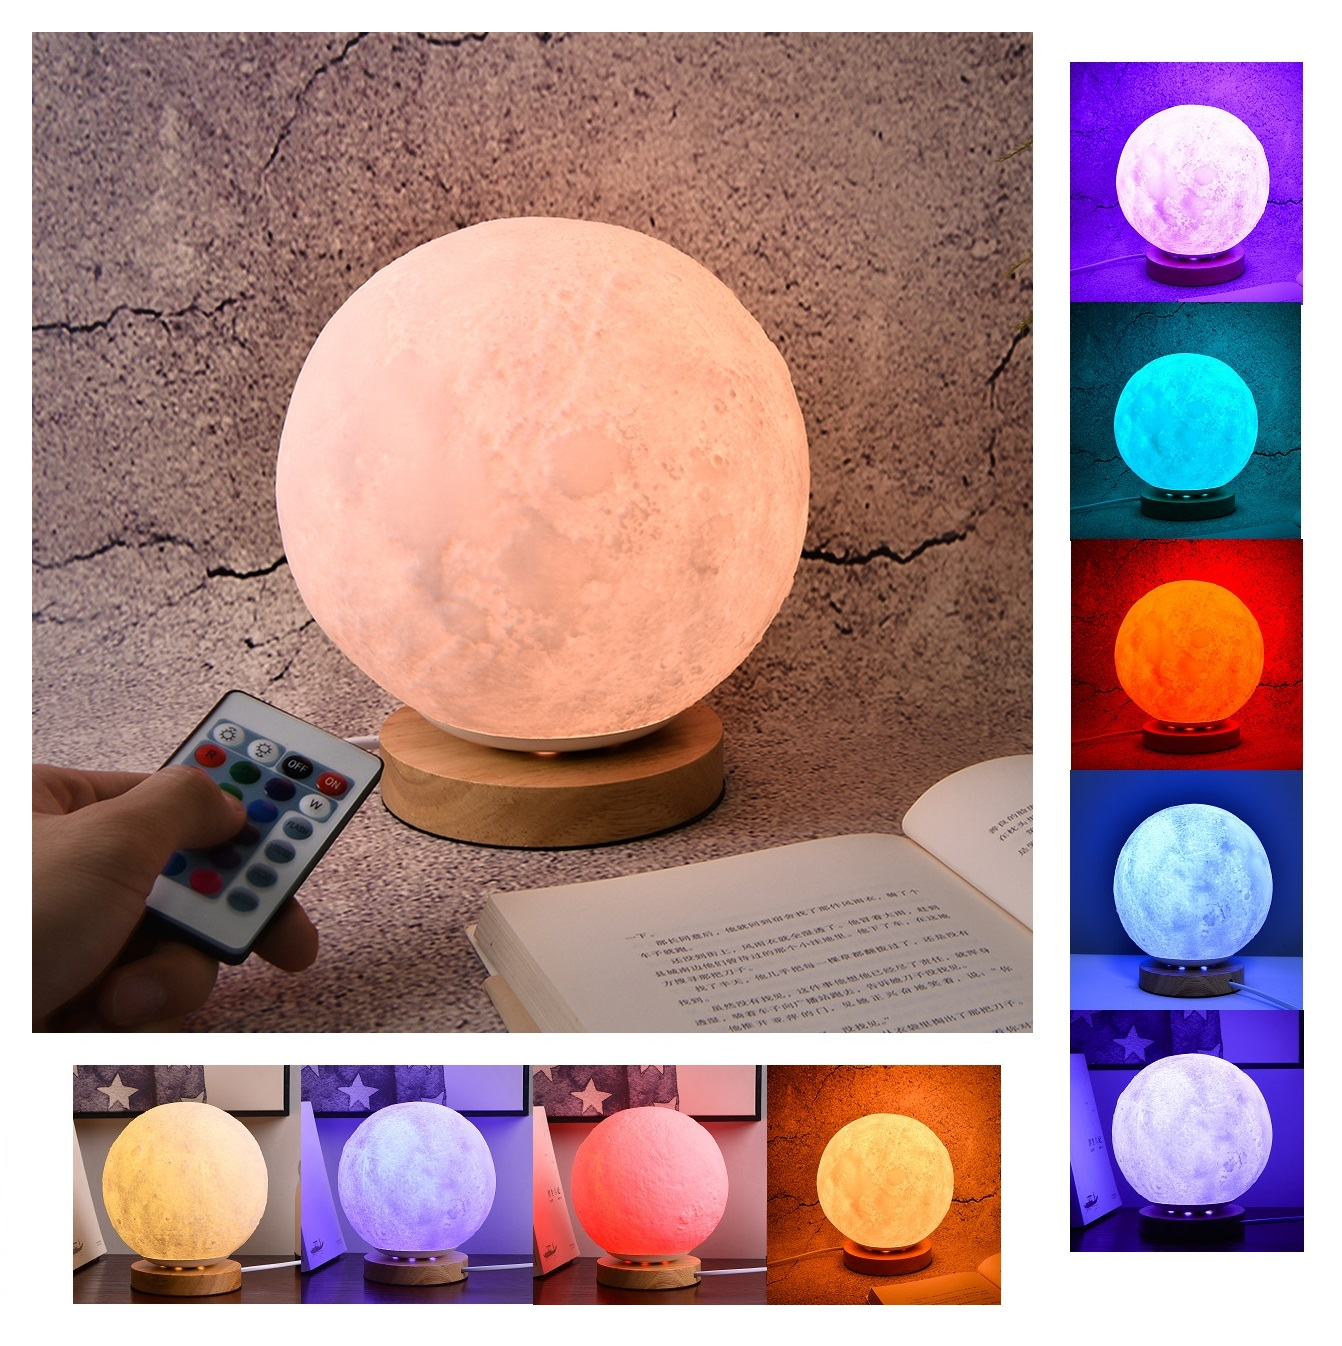 Rechargeable 3D Print Moon Lamp 7 Colors Change Remote Control Touch Switch Bedroom Night Light for Home Decor Creative Gift 3d print moon lamp rechargeable night light rgb color change touch switch bedroom 3d lunar moon lamp home decor creative gift